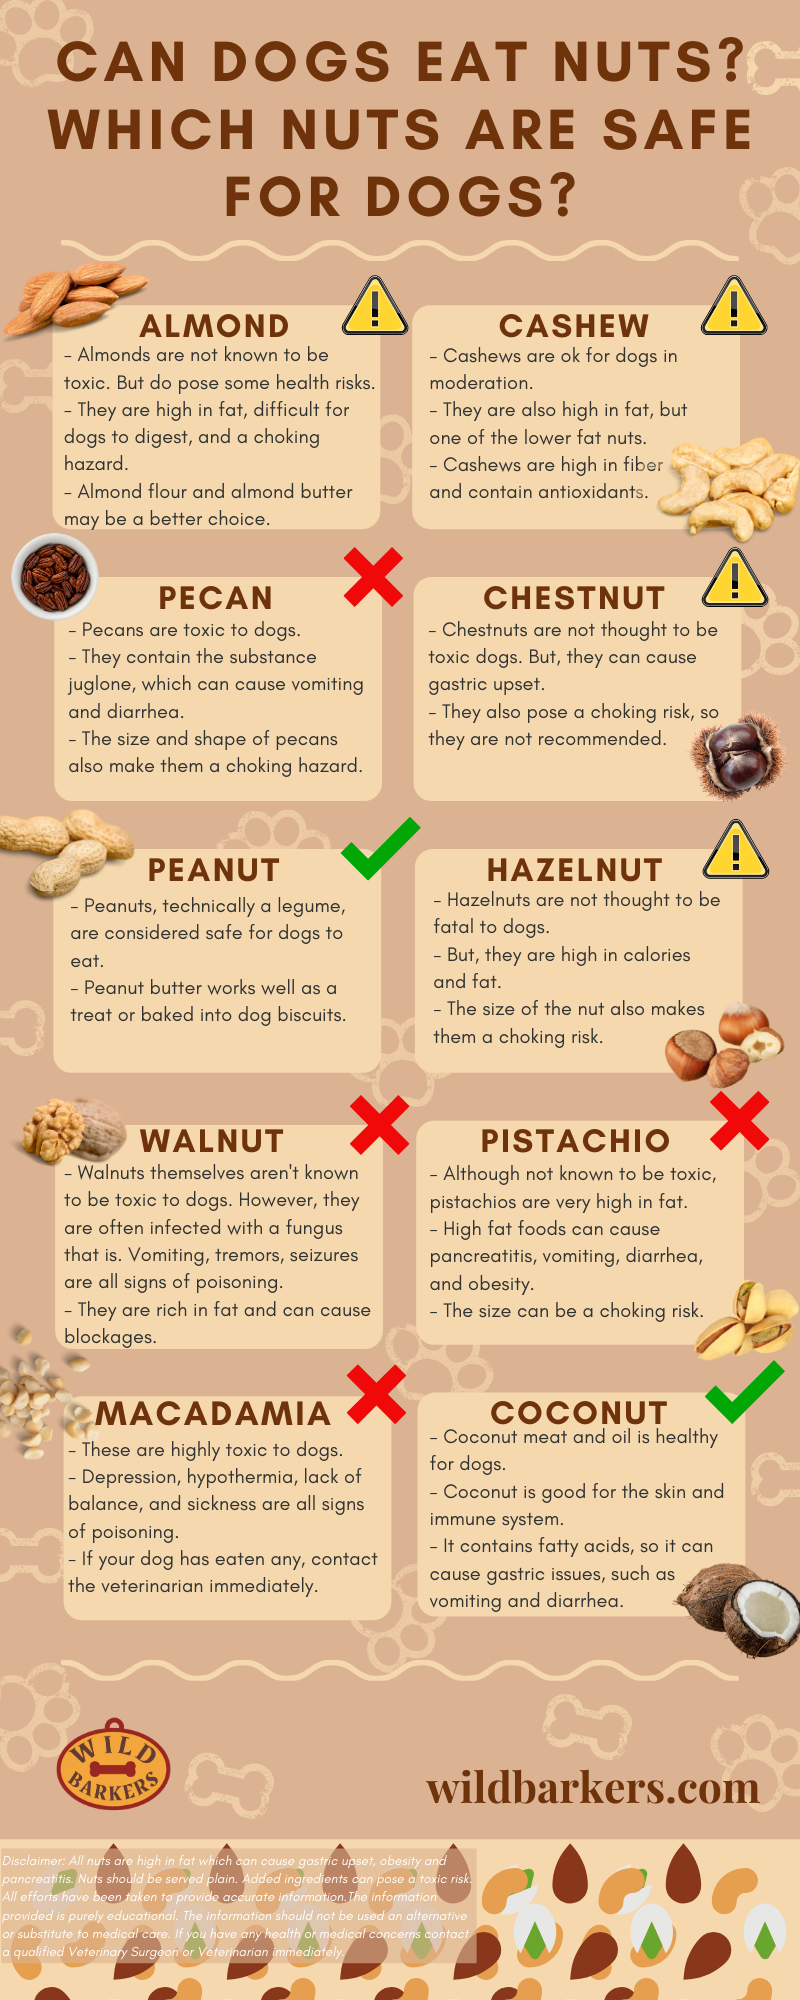 Can Dogs Eat Nuts? Which Nuts Are Safe